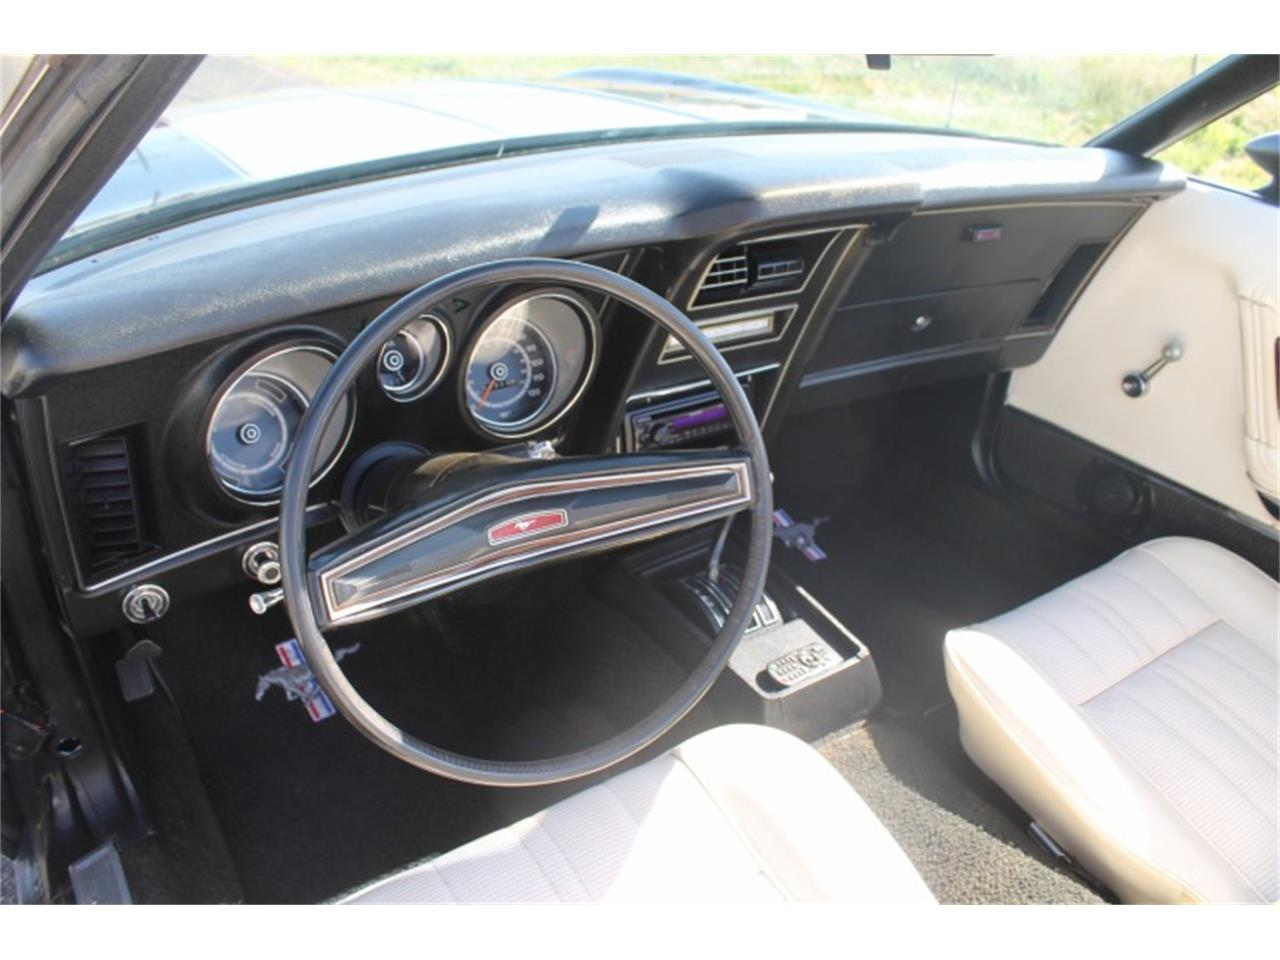 Large Picture of Classic '73 Ford Mustang located in Arizona Auction Vehicle Offered by Silver Auctions - OM43